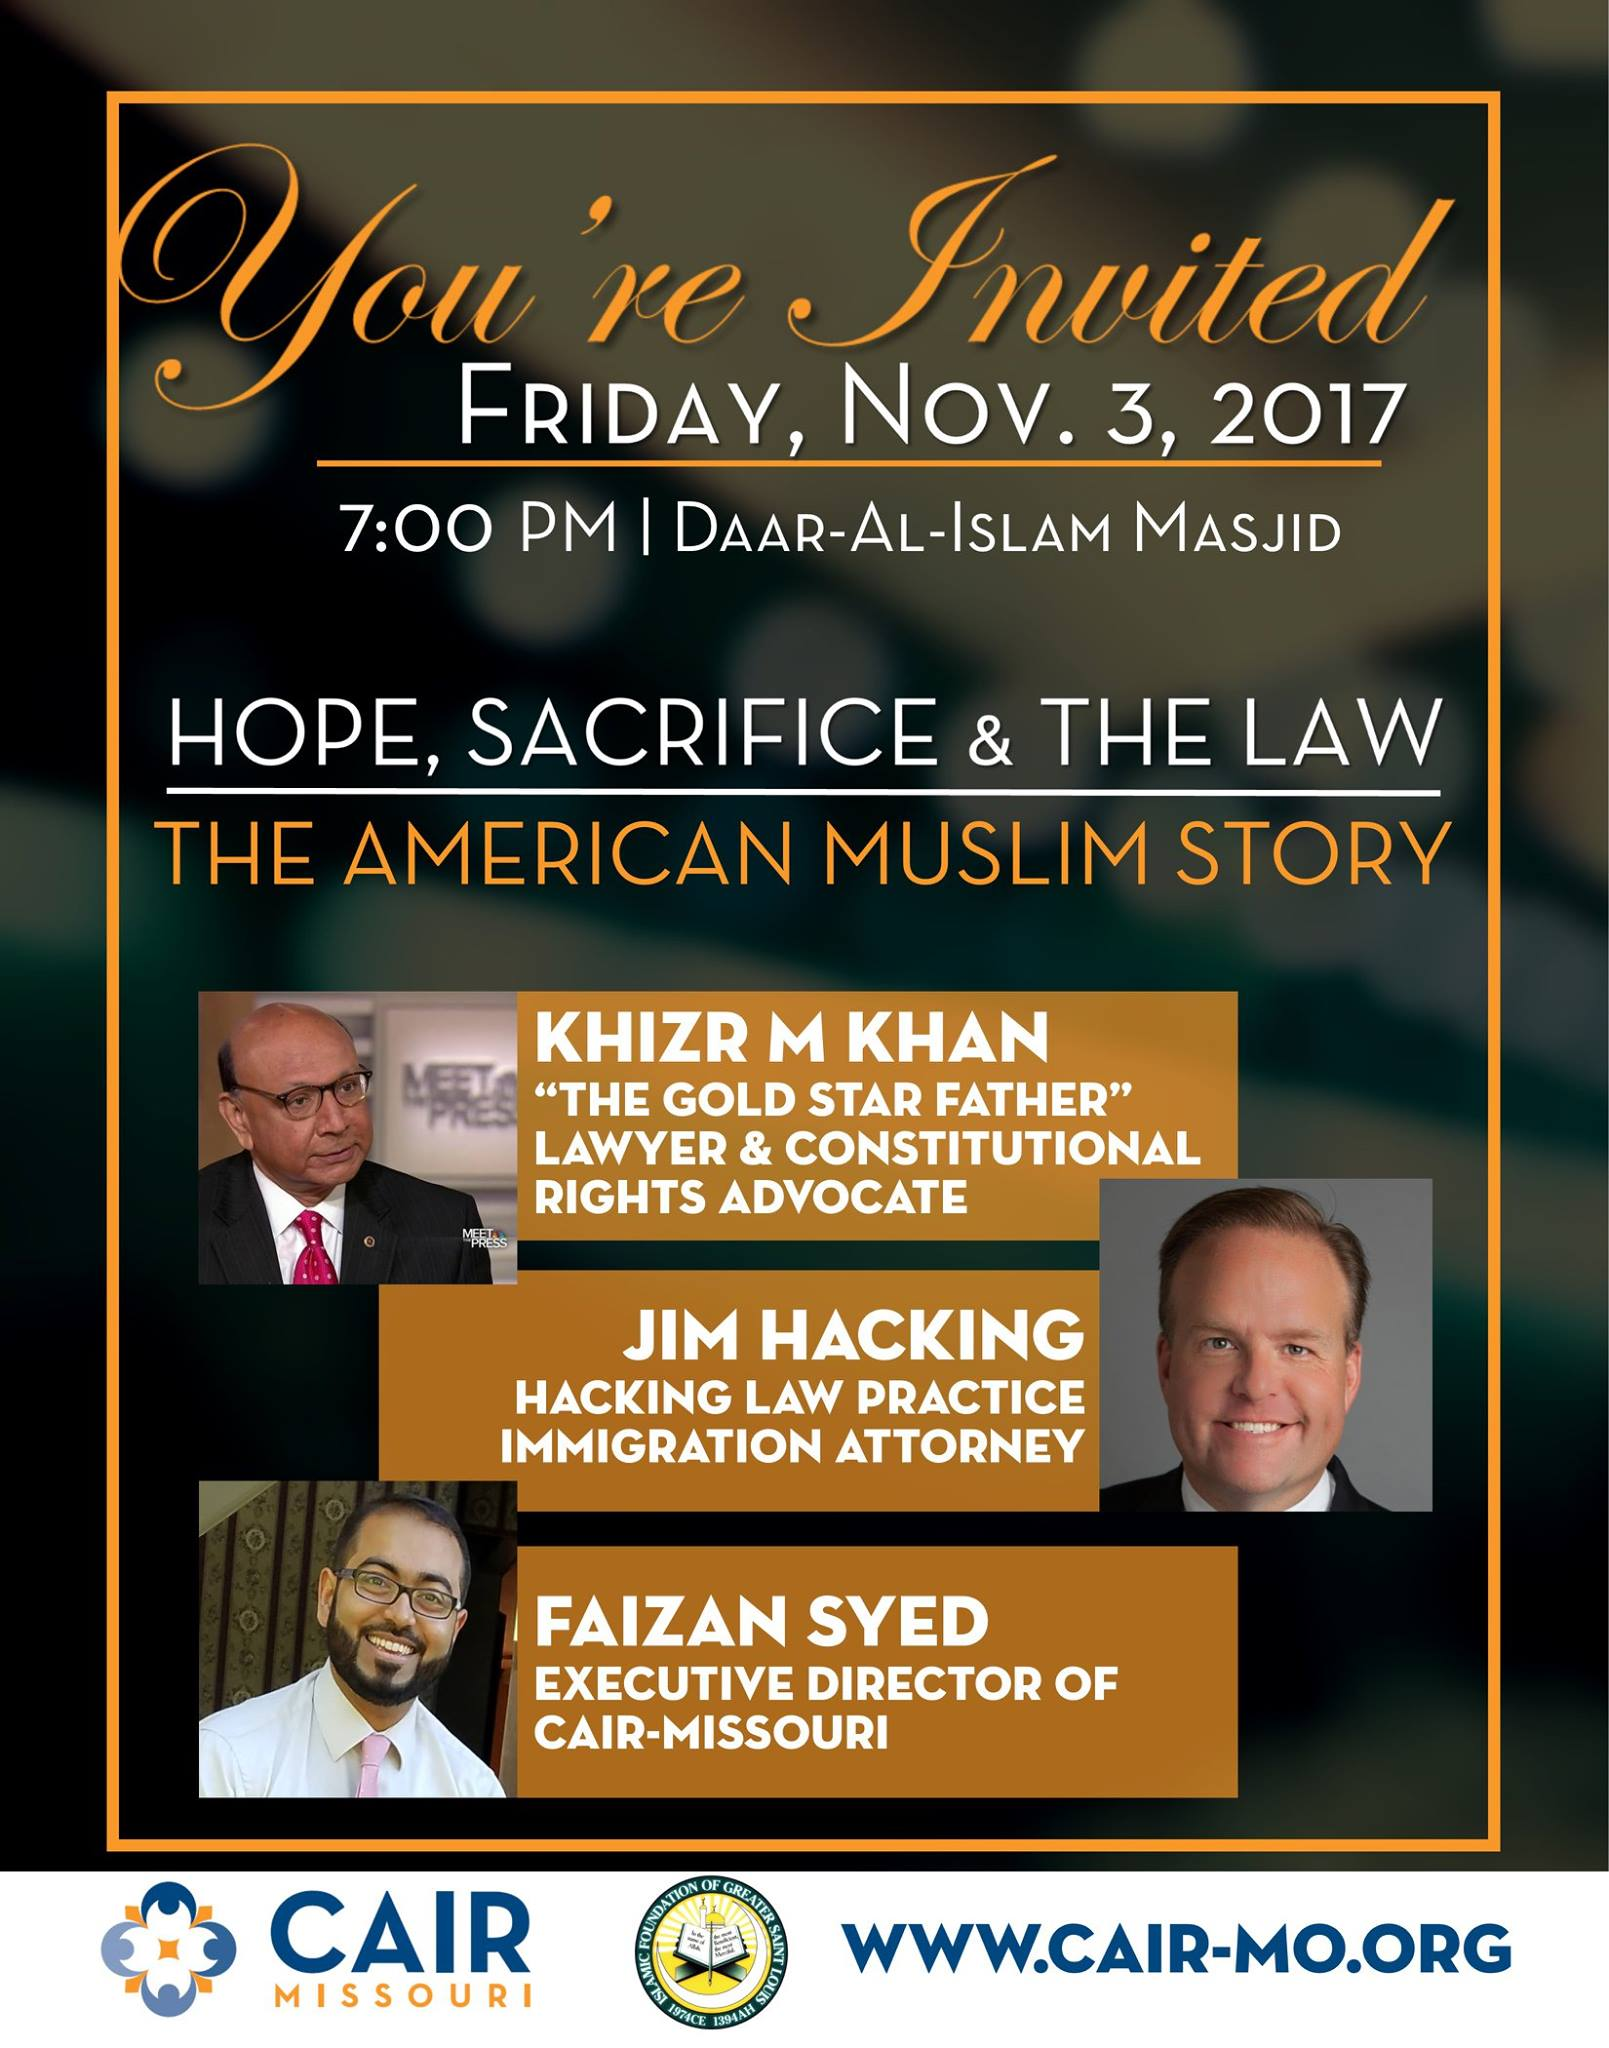 Khizr Khan Jim Hacking Faizan Syed CAIR Missouri